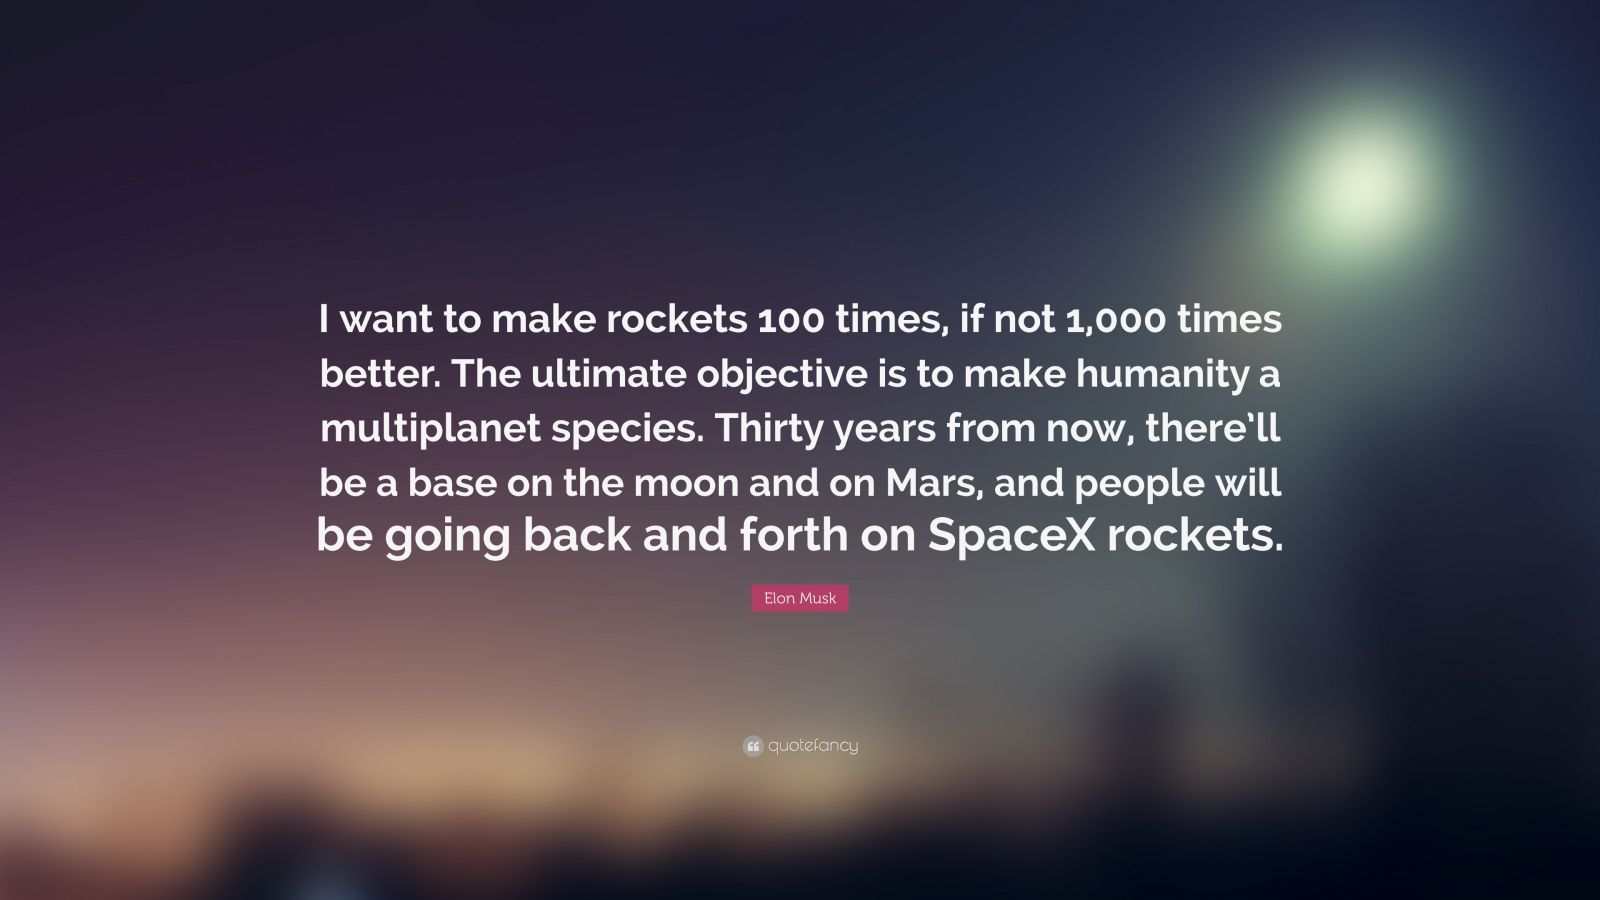 "Elon Musk Quote: ""I want to make rockets 100 times, if not 1,000 times better. The ultimate objective is to make humanity a multiplanet species. Thirty years from now, there'll be a base on the moon and on Mars, and people will be going back and forth on SpaceX rockets."""